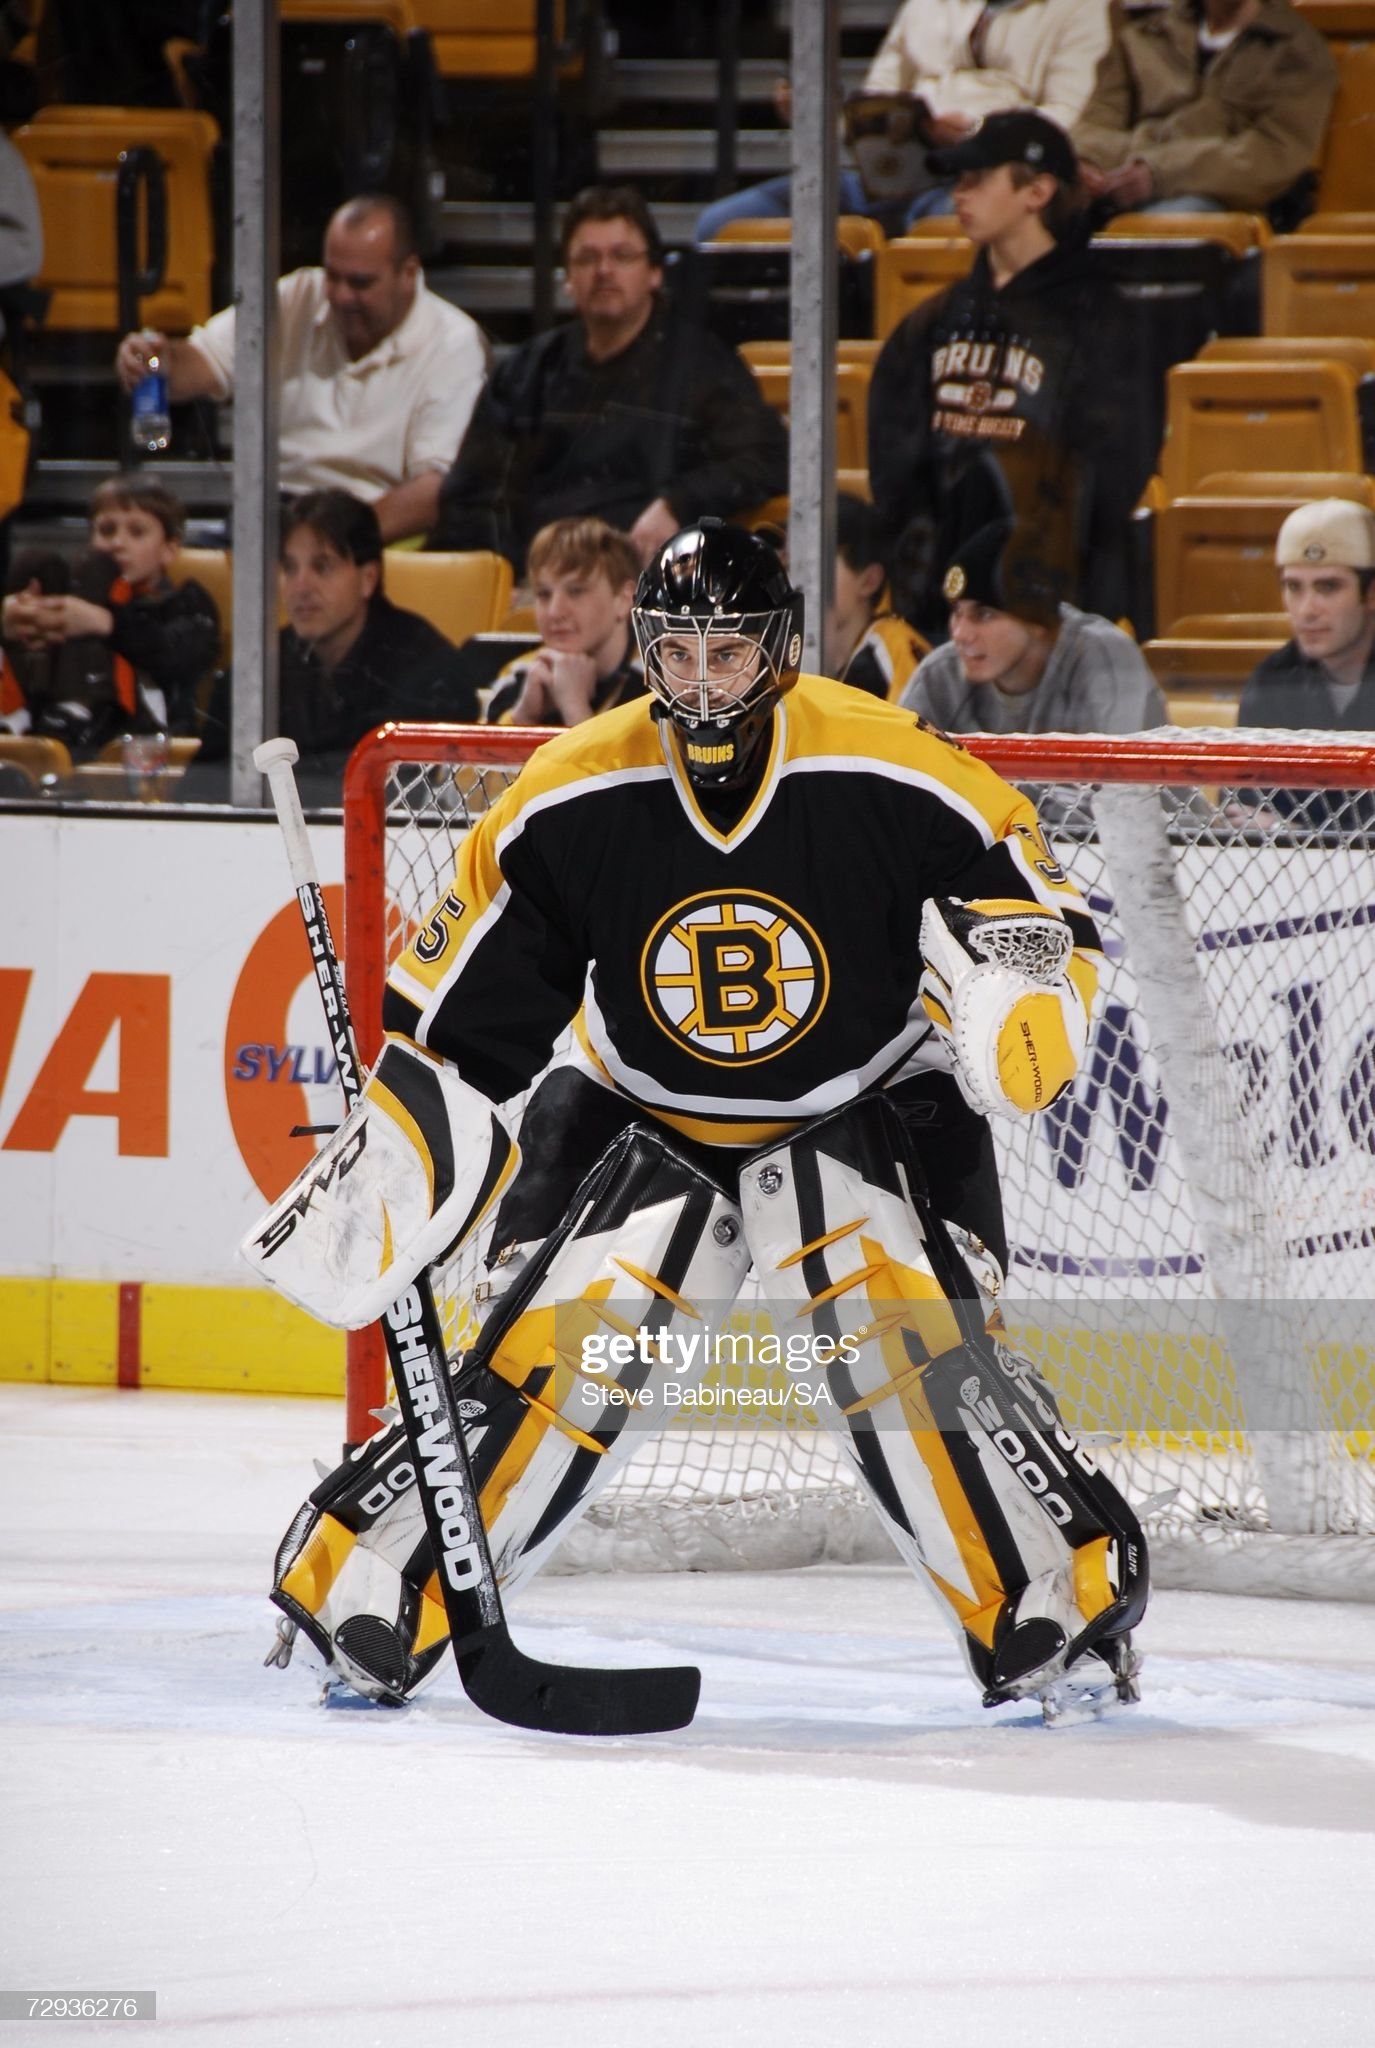 philippe-sauve-of-the-boston-bruins-eyes